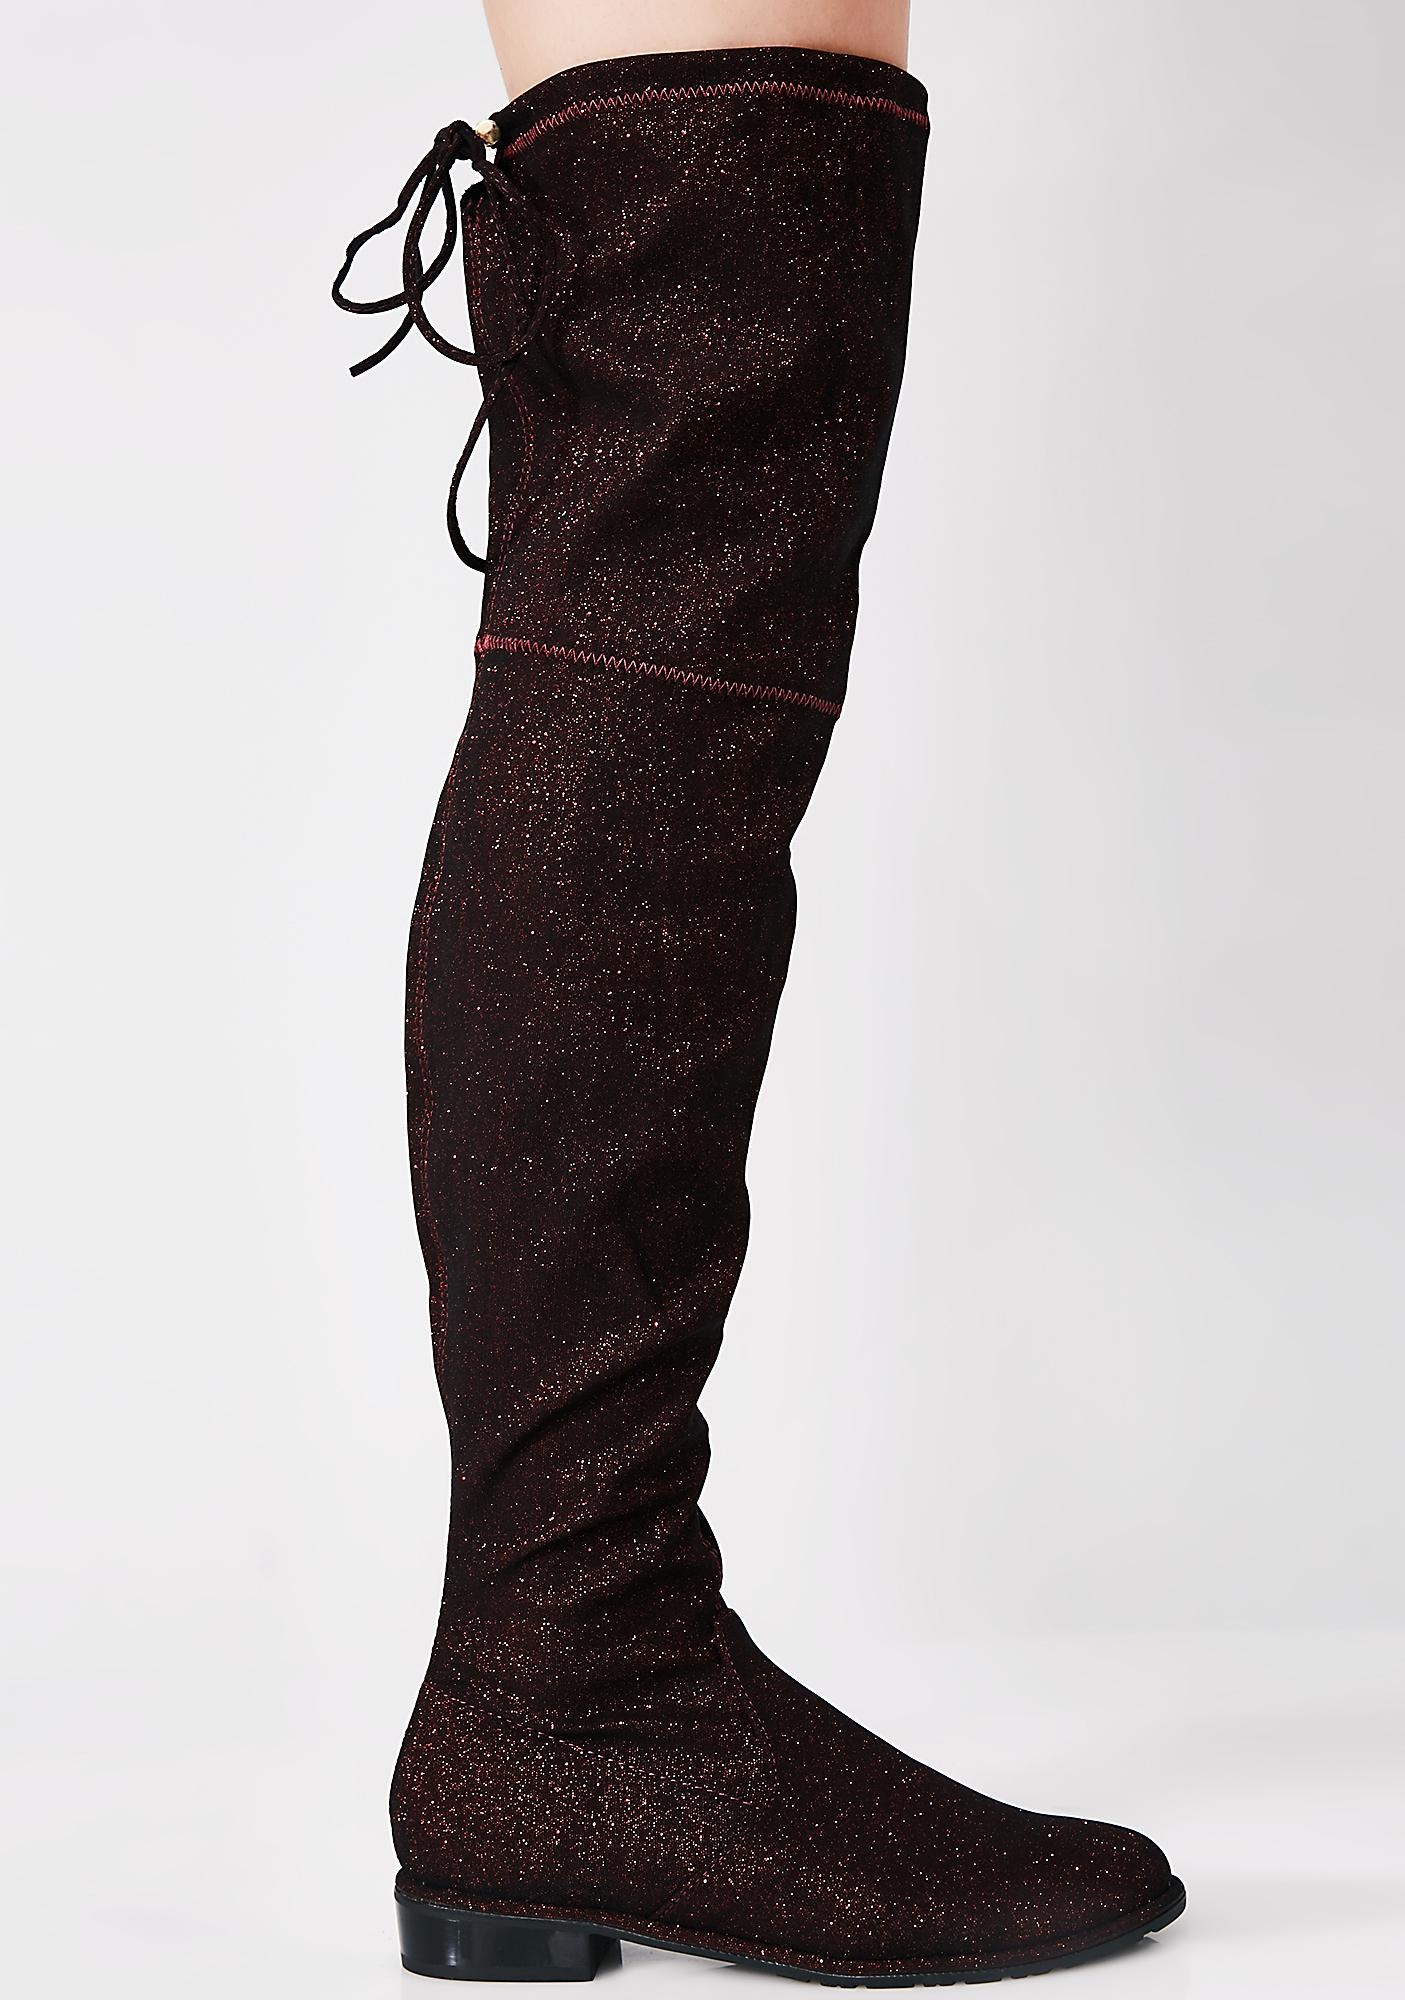 Scarlet Glitter Ditz Over The Knee Boots